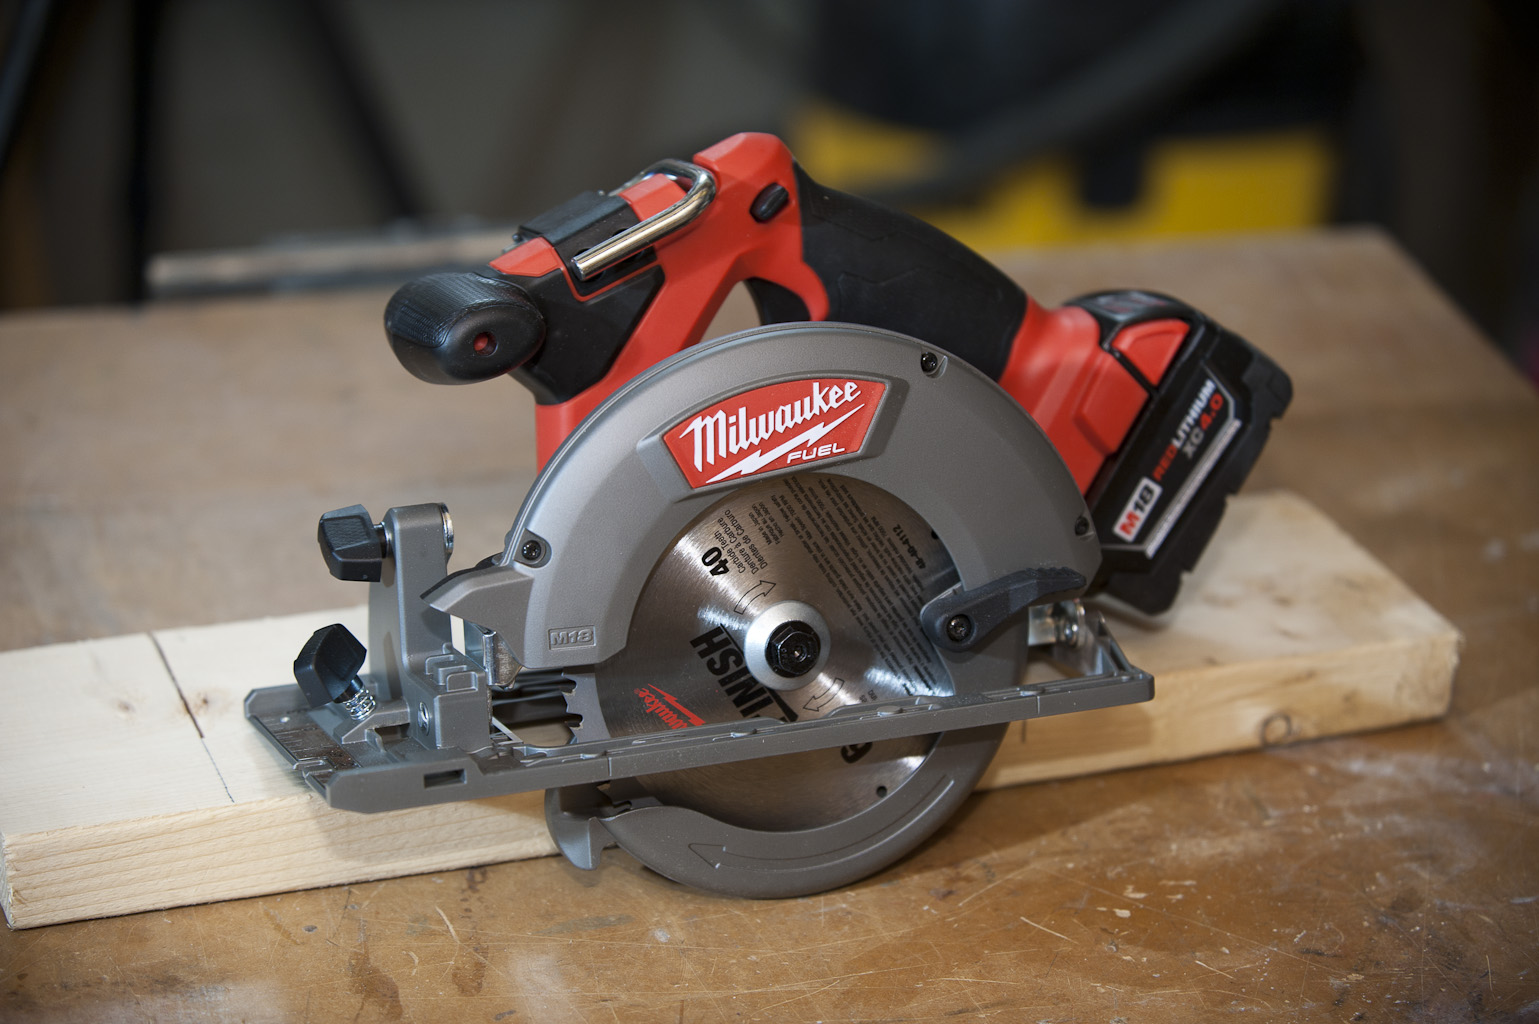 Milwaukee m18 fuel circular saw kit 2730 22 a concord carpenter milwaukee m18 fuel circular saw kit 2730 22 greentooth Image collections